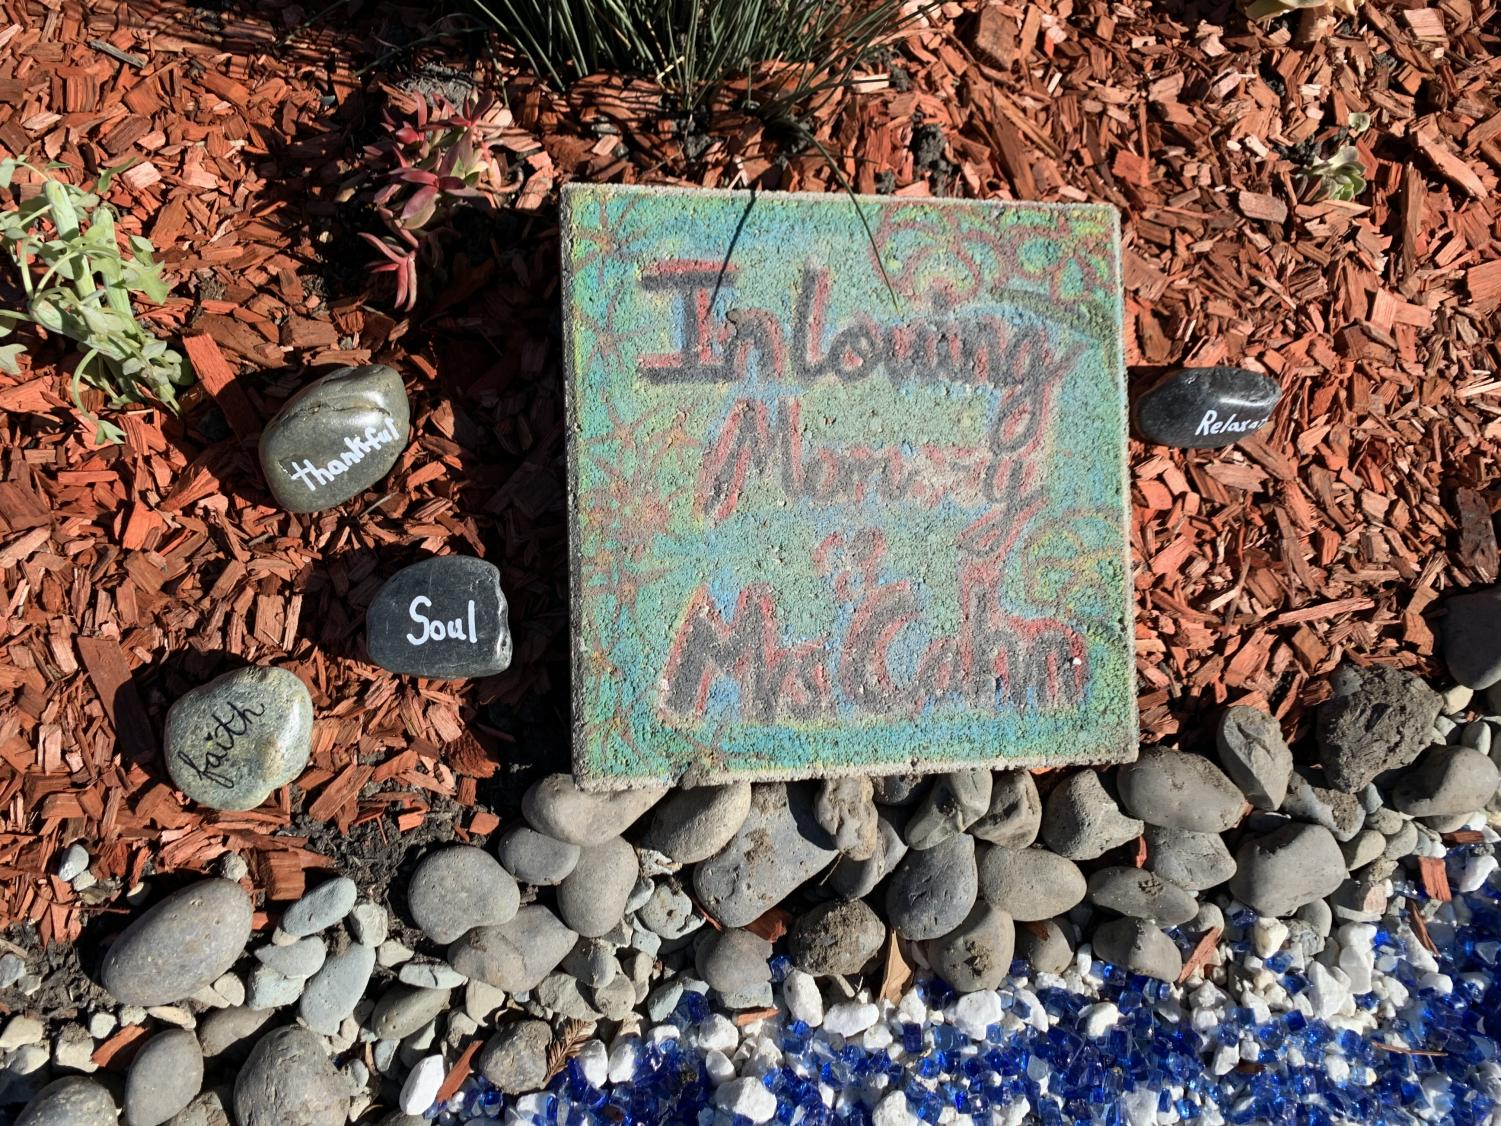 Stones with hopeful words on them in